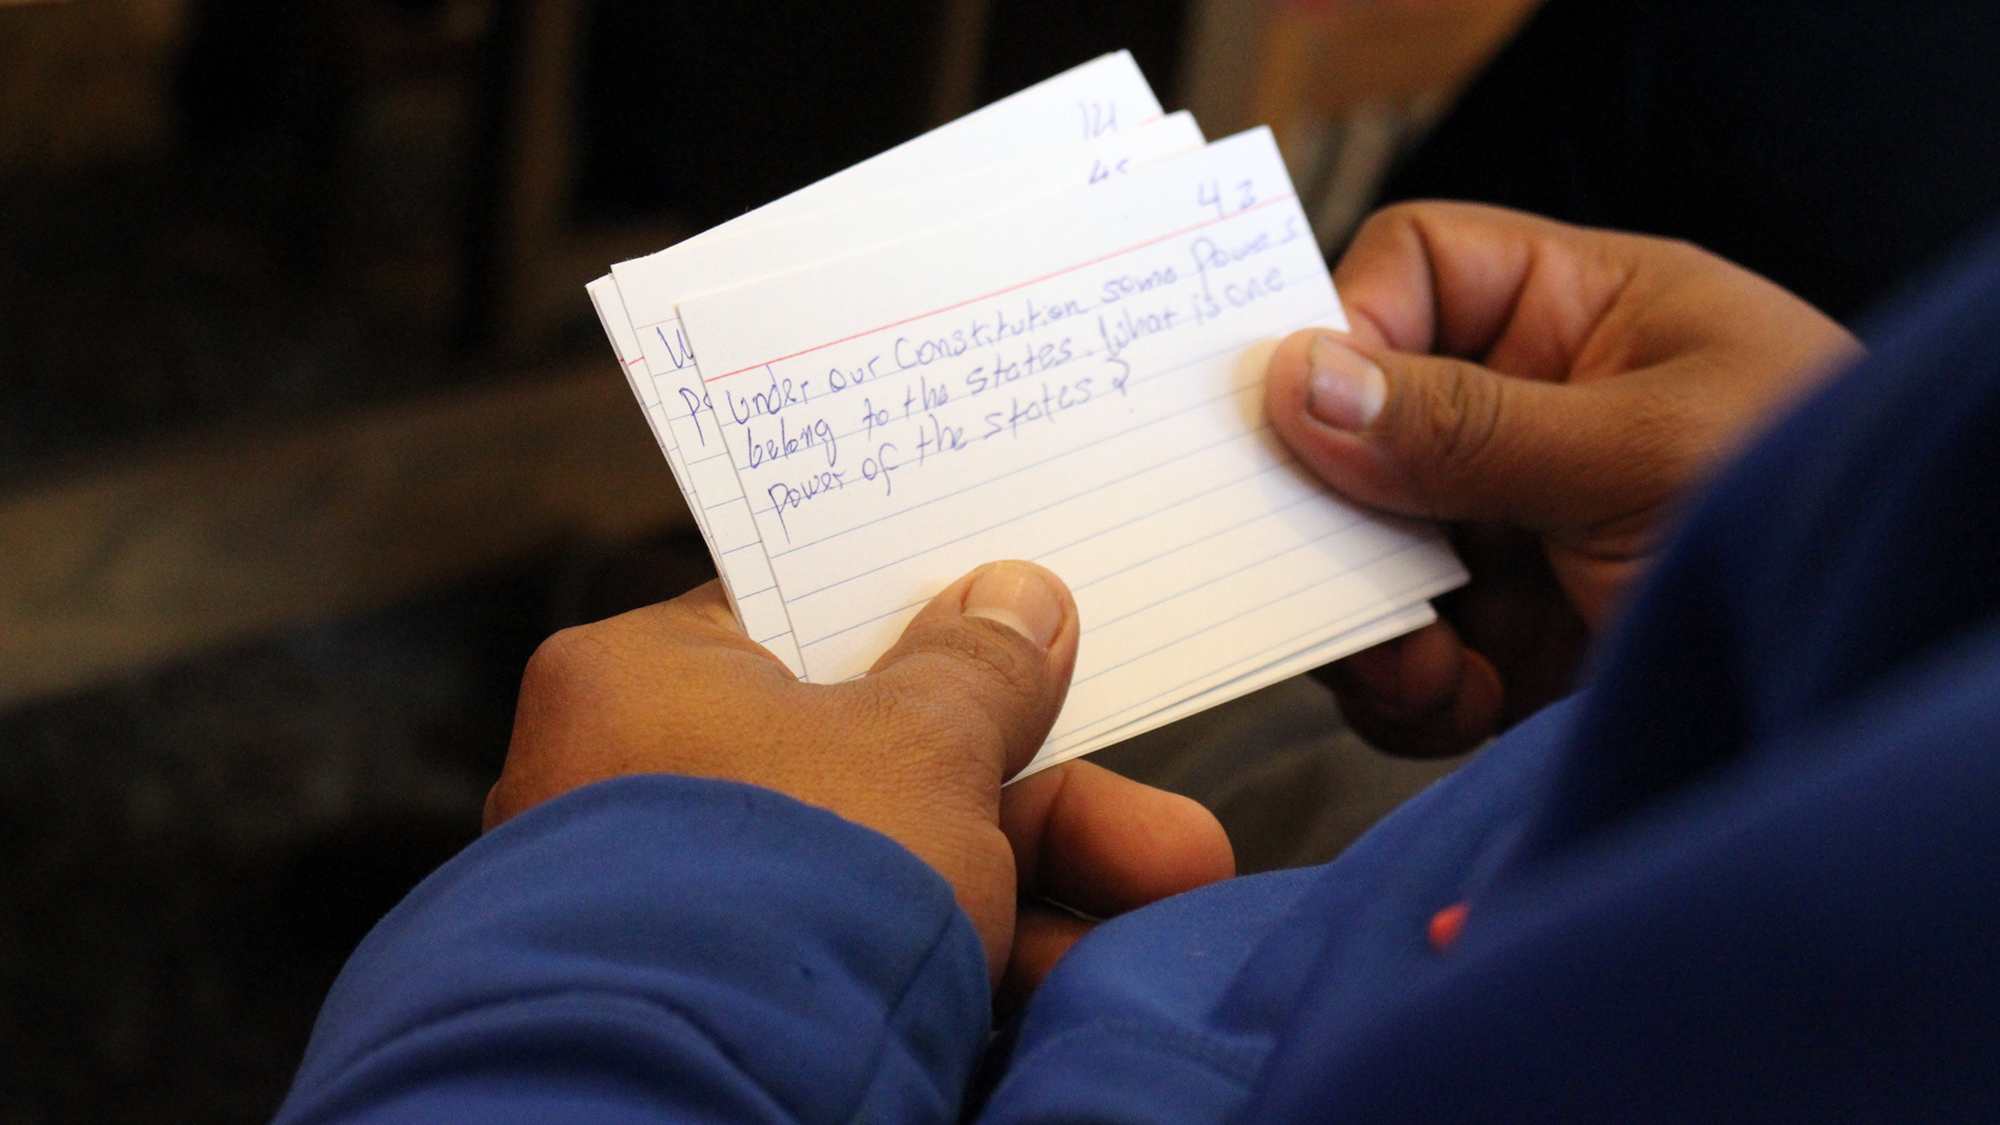 A student practices with flashcards with facts about American government during a class at the public library in Brush, Colo.